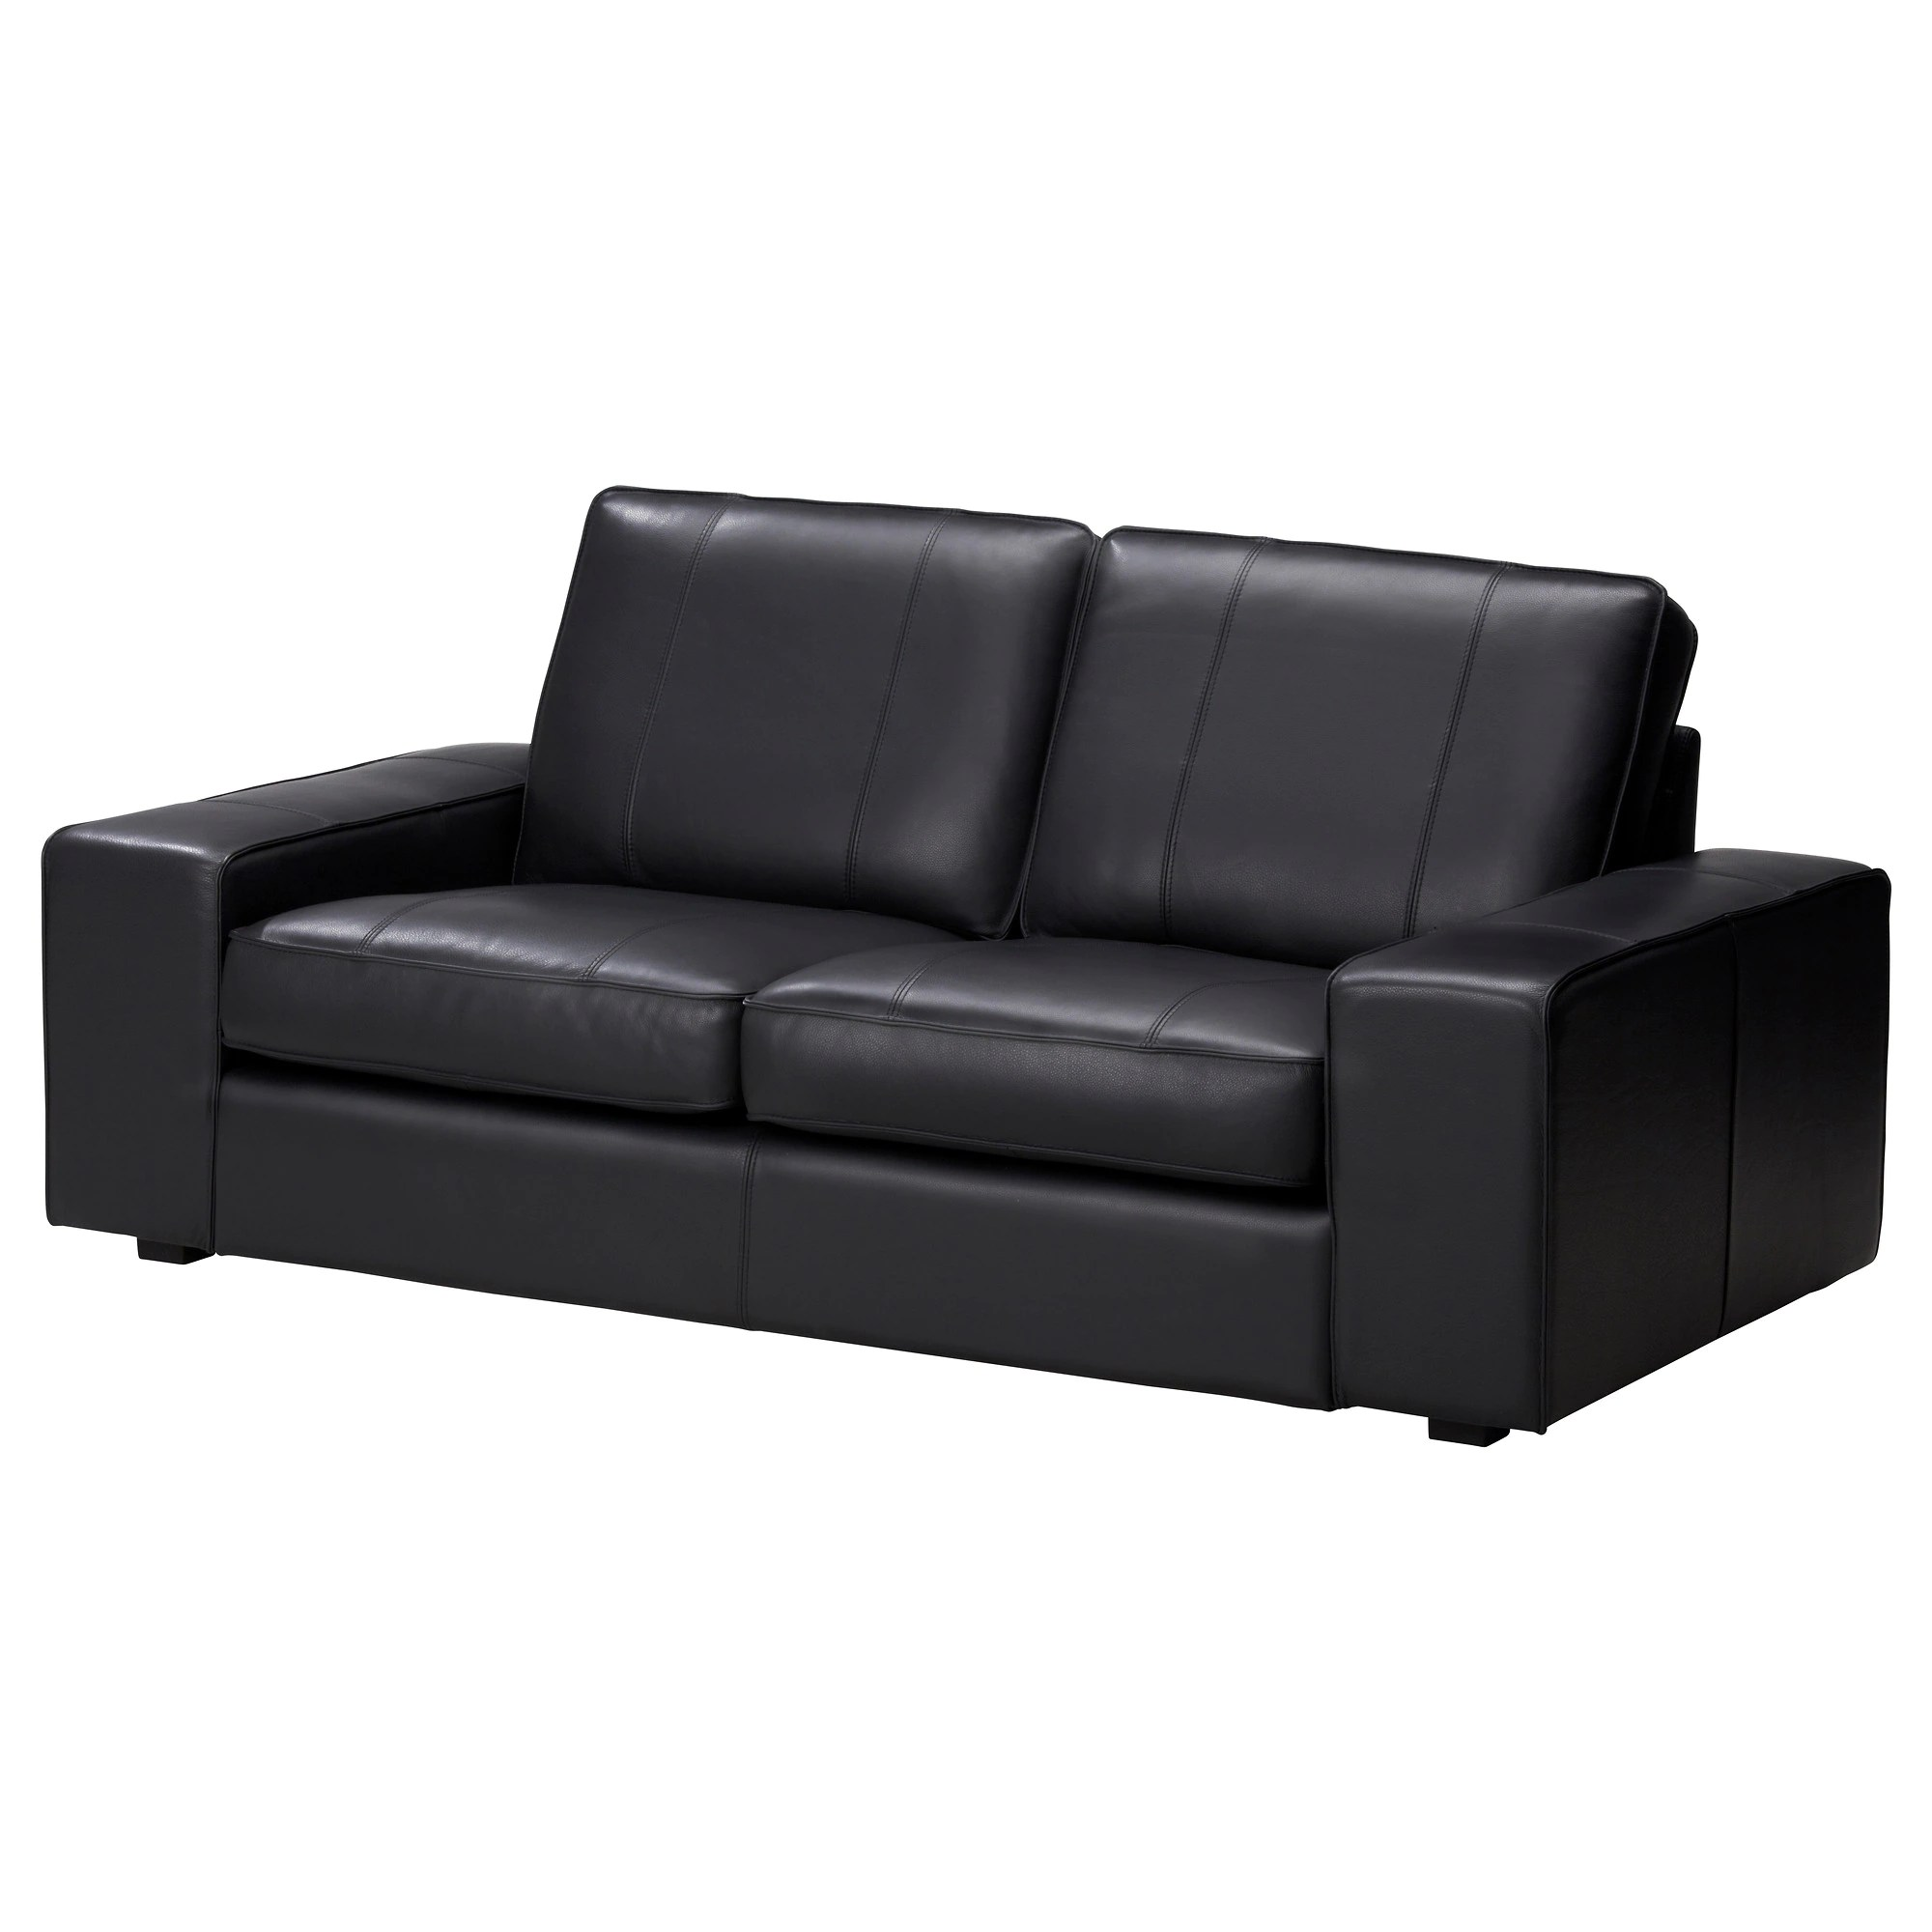 Kivik Sofa Leather Kivik Loveseat Grann Bomstad Black